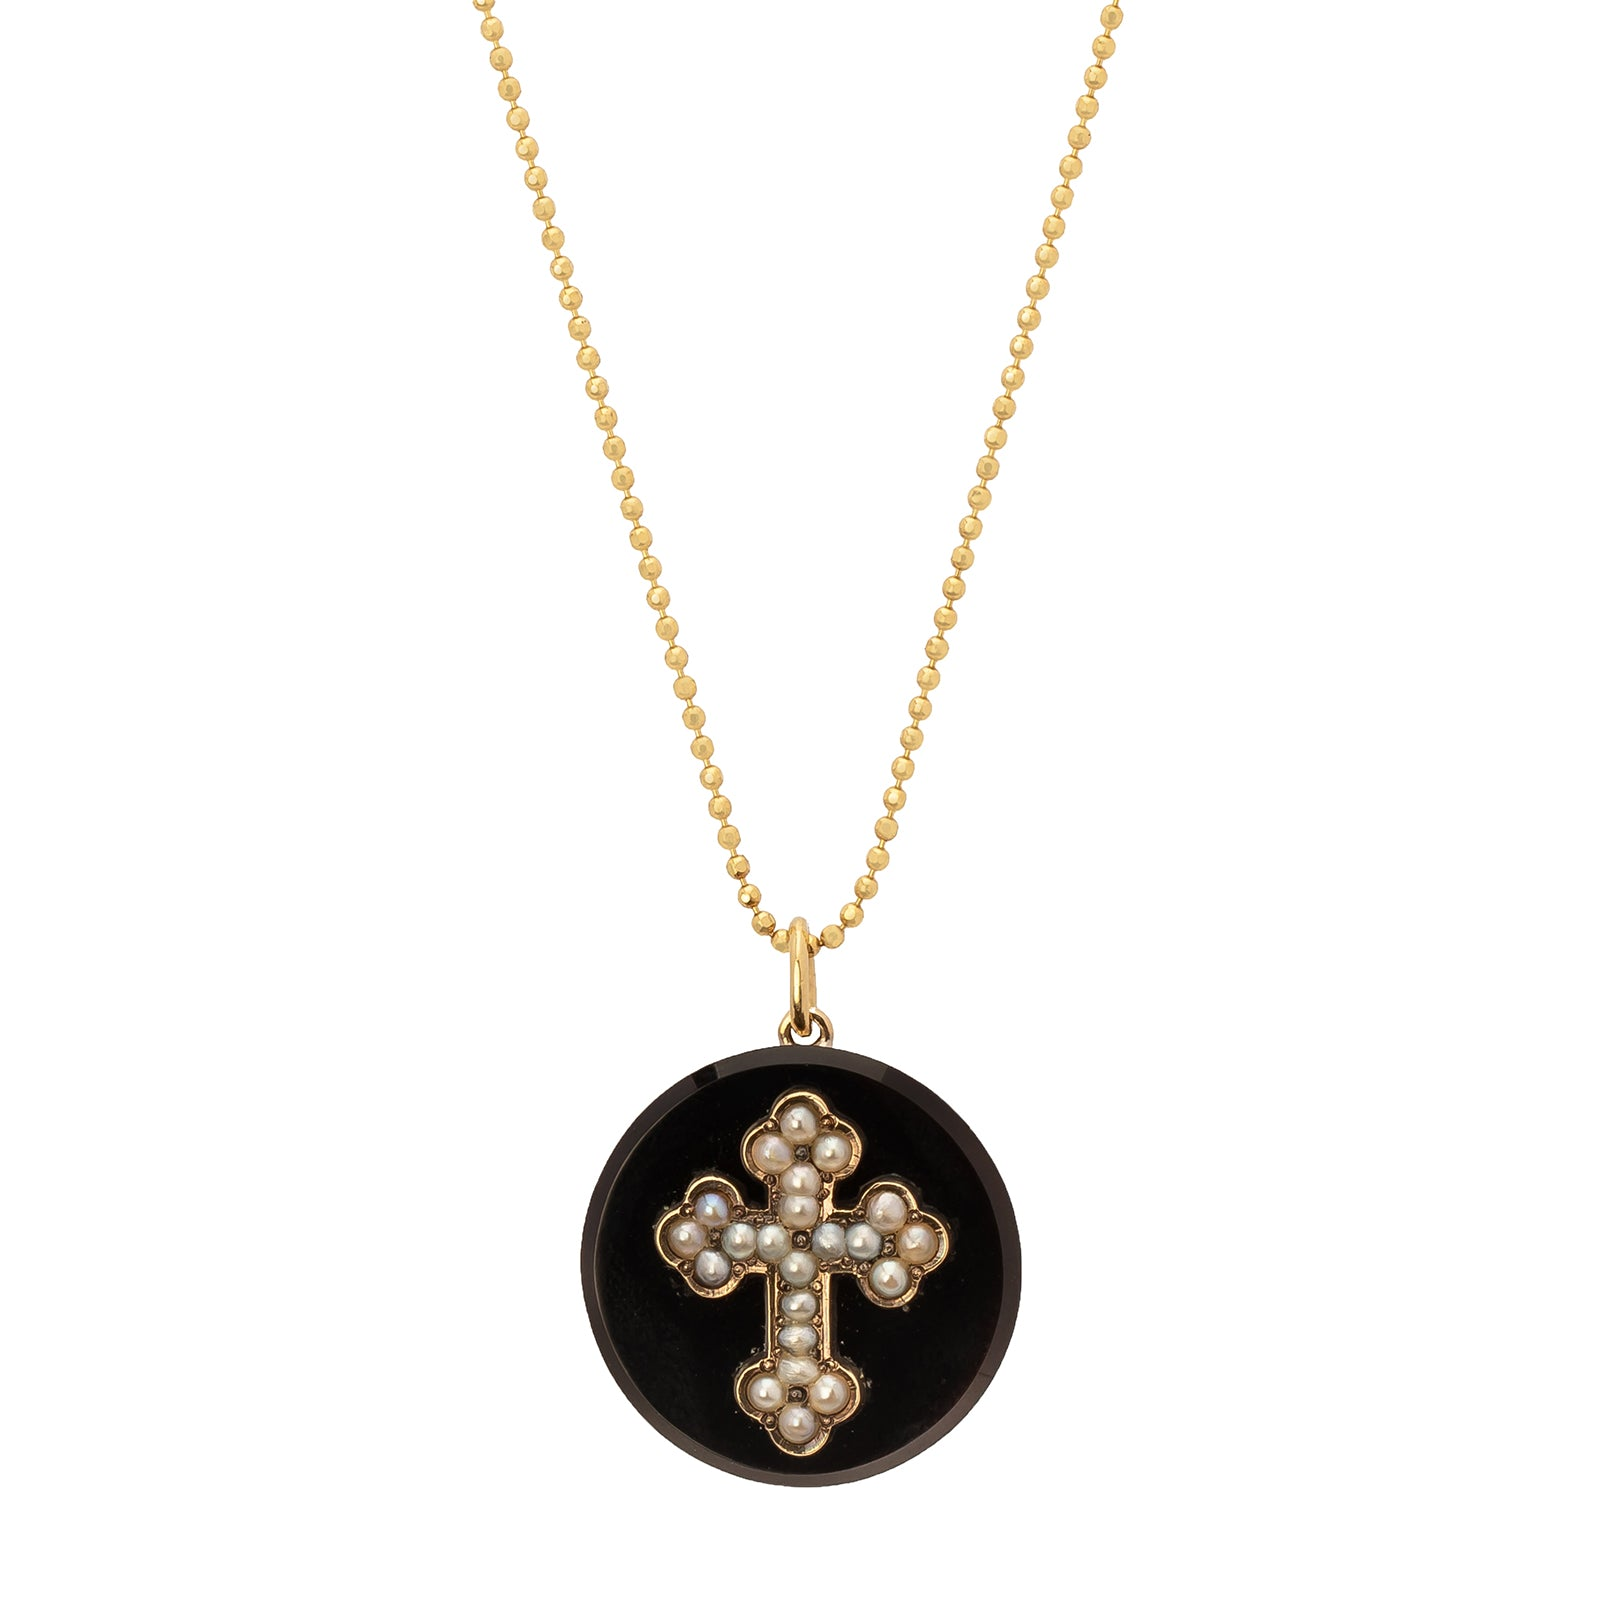 Antique & Vintage Jewelry Onyx Gold Cross Pendant - Charms & Pendants - Broken English Jewelry